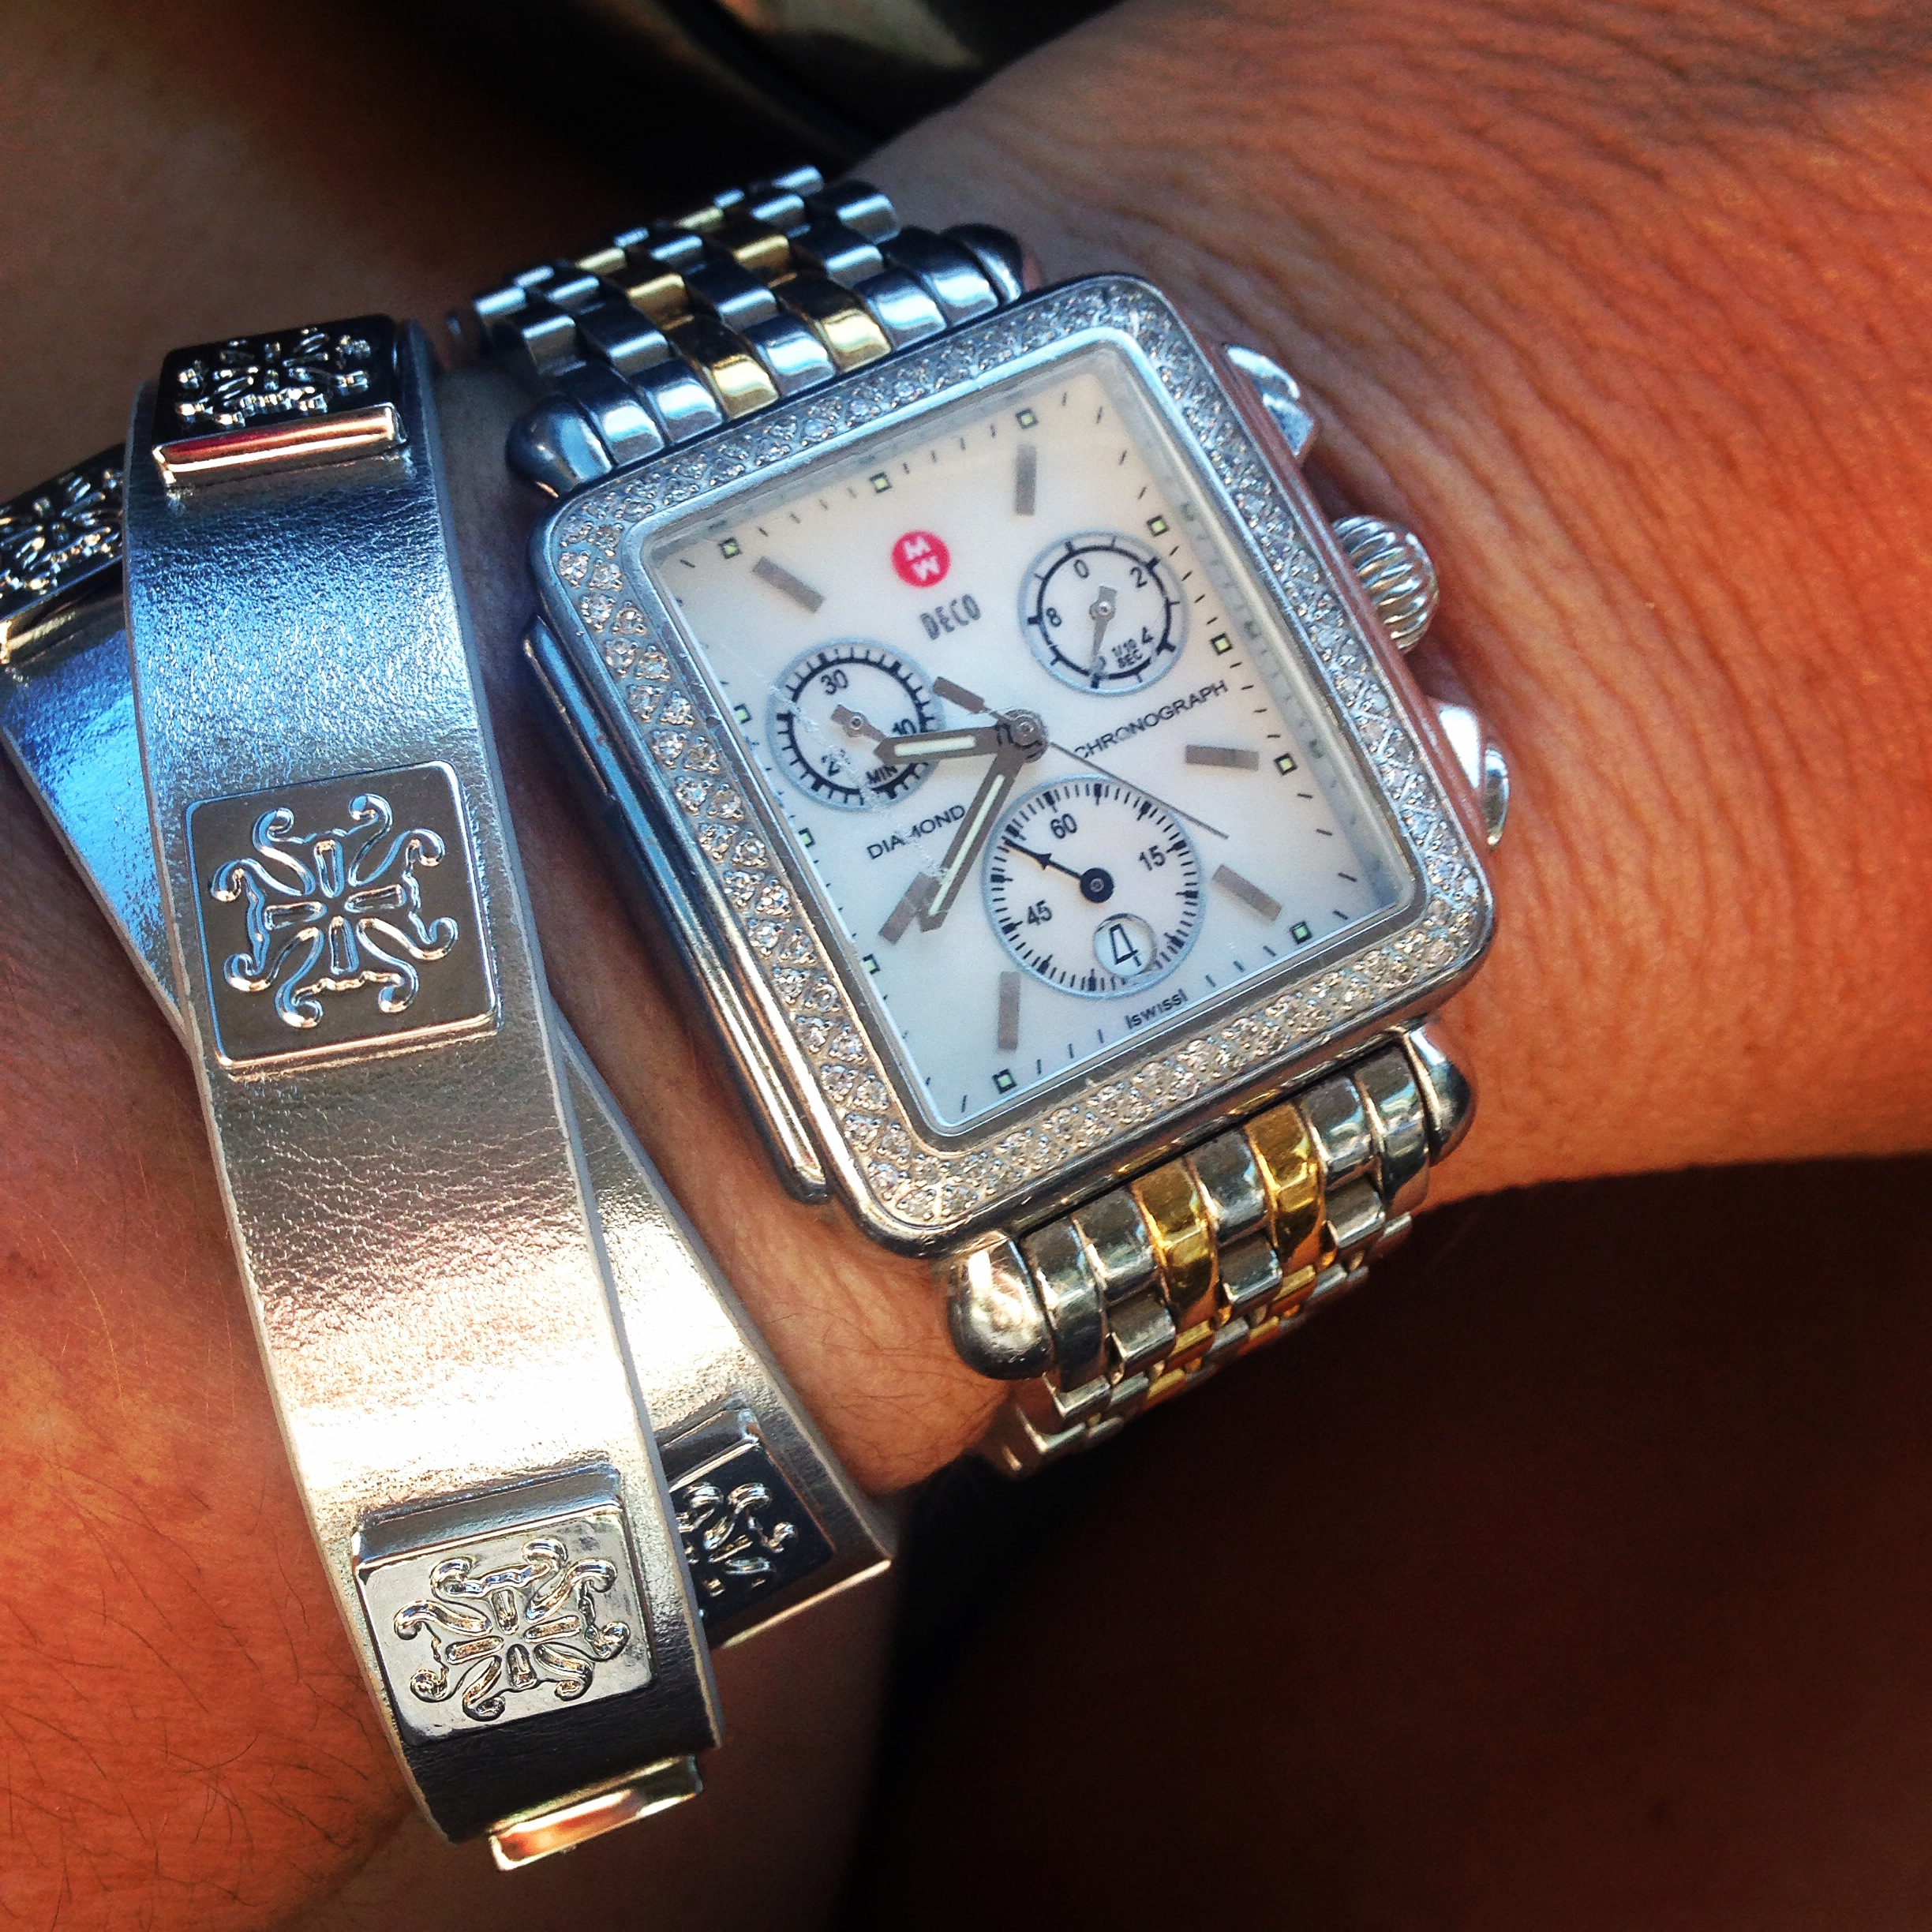 c/o Rustic Cuff (Watch is Michele)